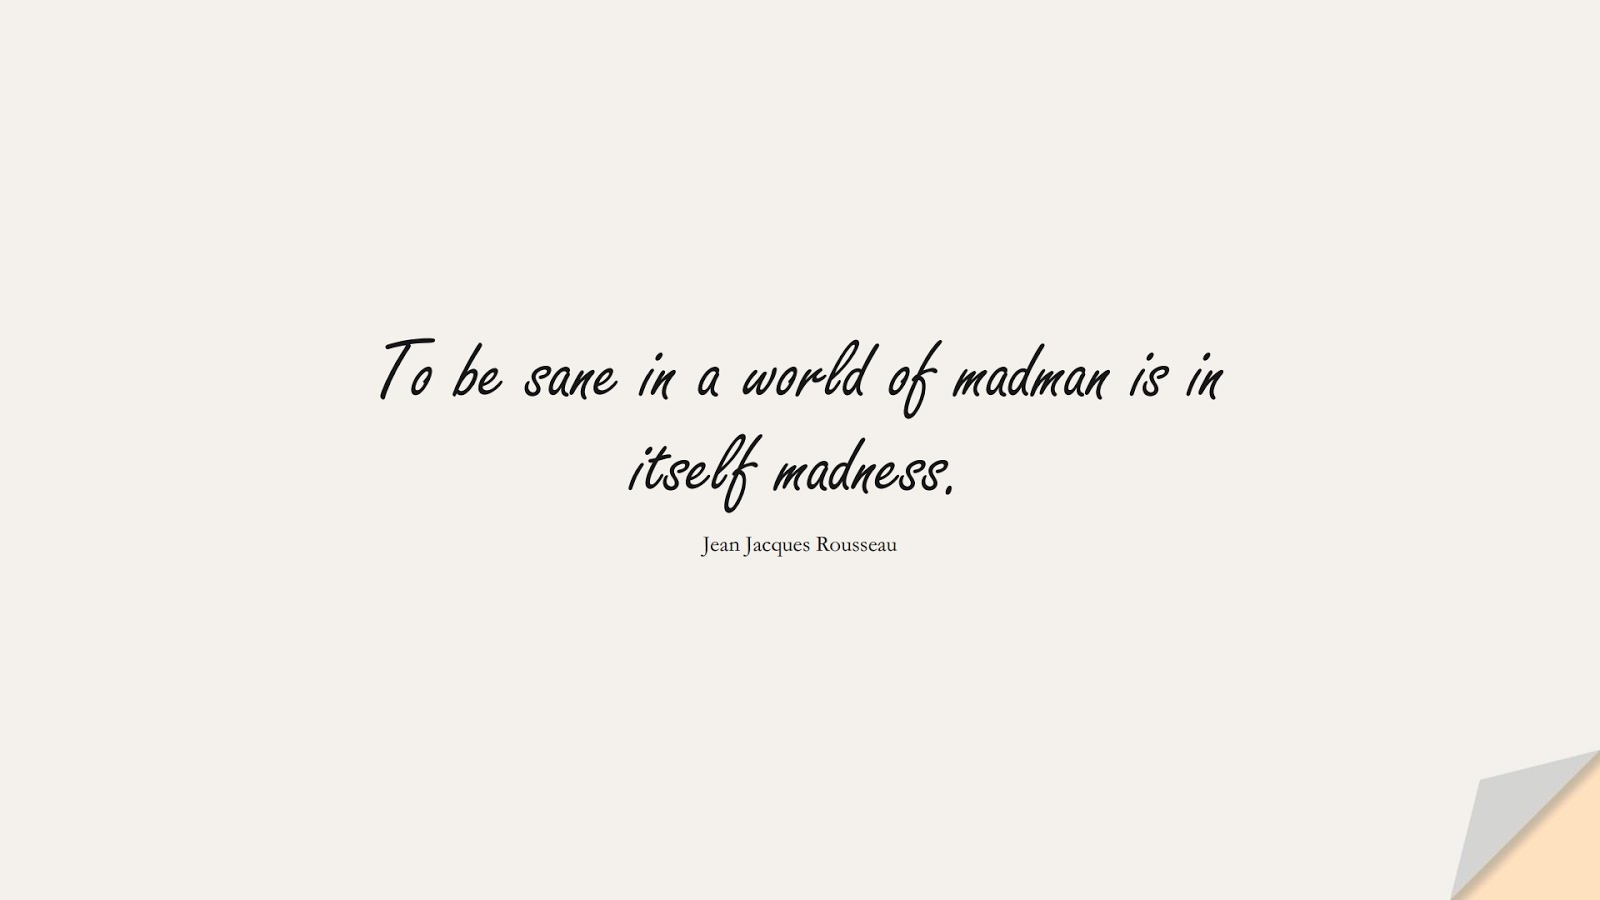 To be sane in a world of madman is in itself madness. (Jean Jacques Rousseau);  #WordsofWisdom